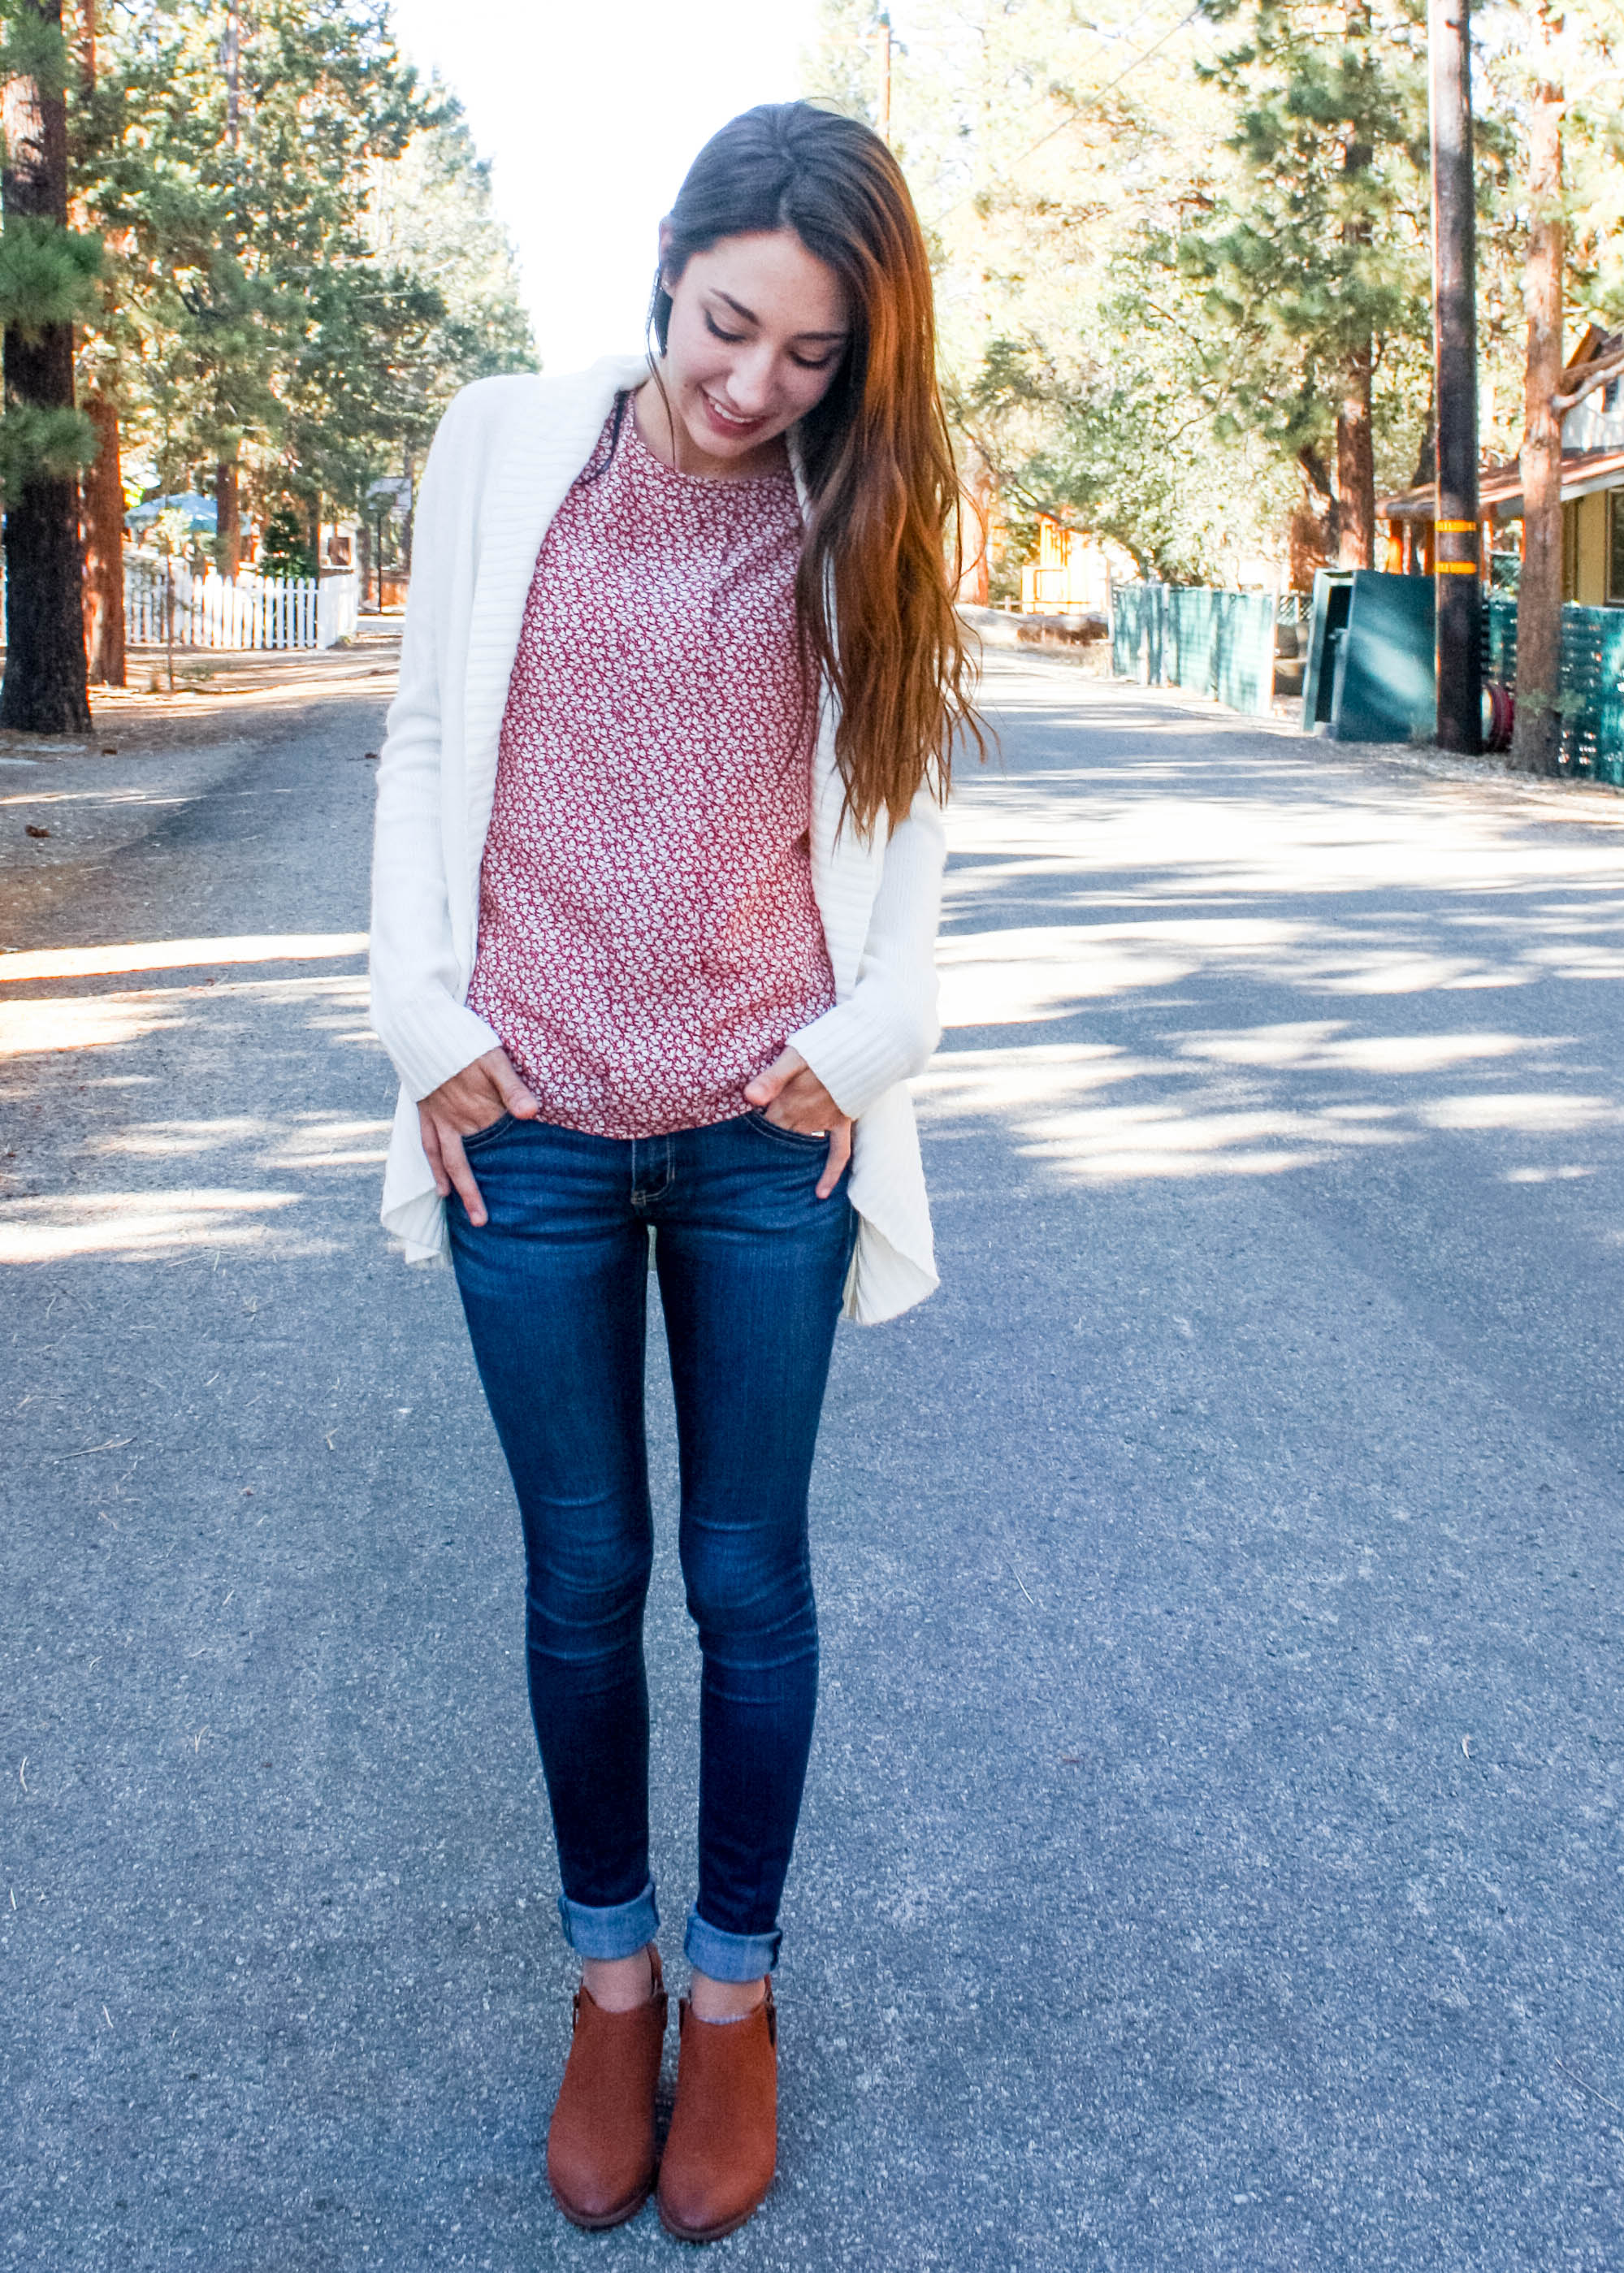 Transitioning into fall tank top and cardigan